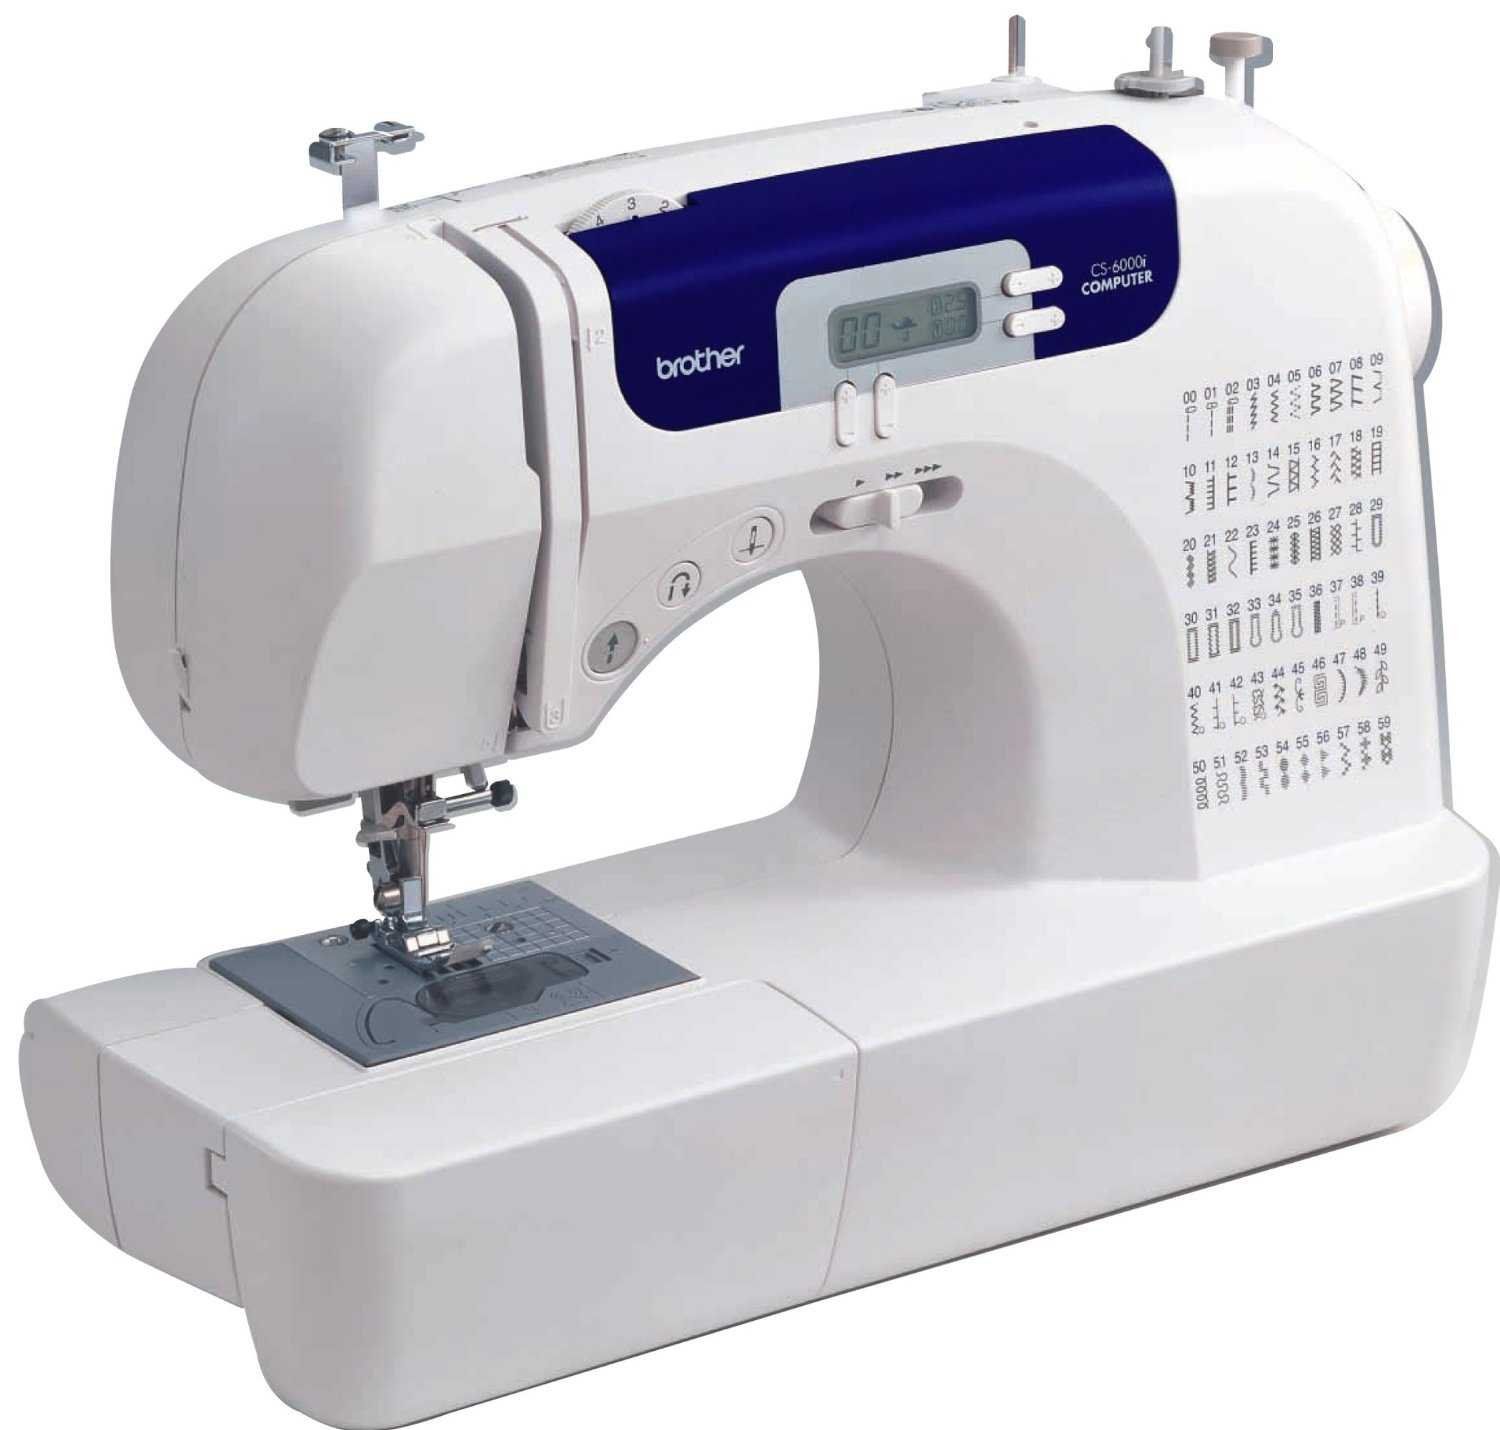 Grandma Reviews The Best Sewing Machine For Beginners